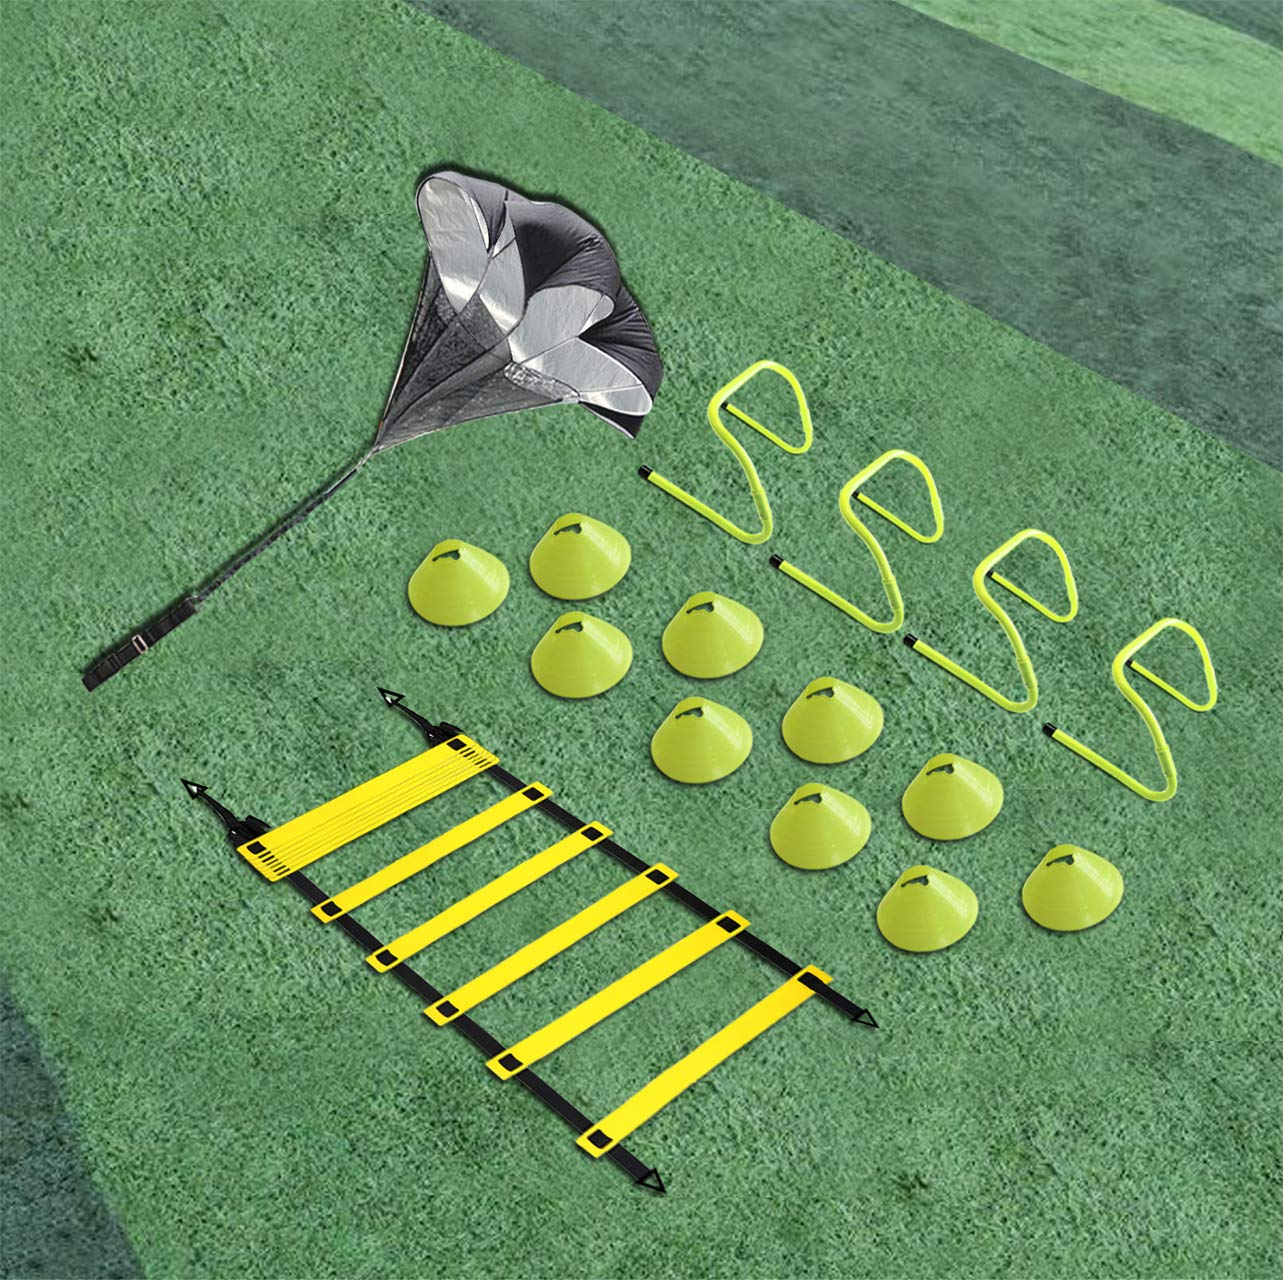 Eazy2hD Speed Agility Training Set- Agility Ladder,12 Cones, 4 Adjustable Hurdles,Parachute, Exercise Workout Equipment…